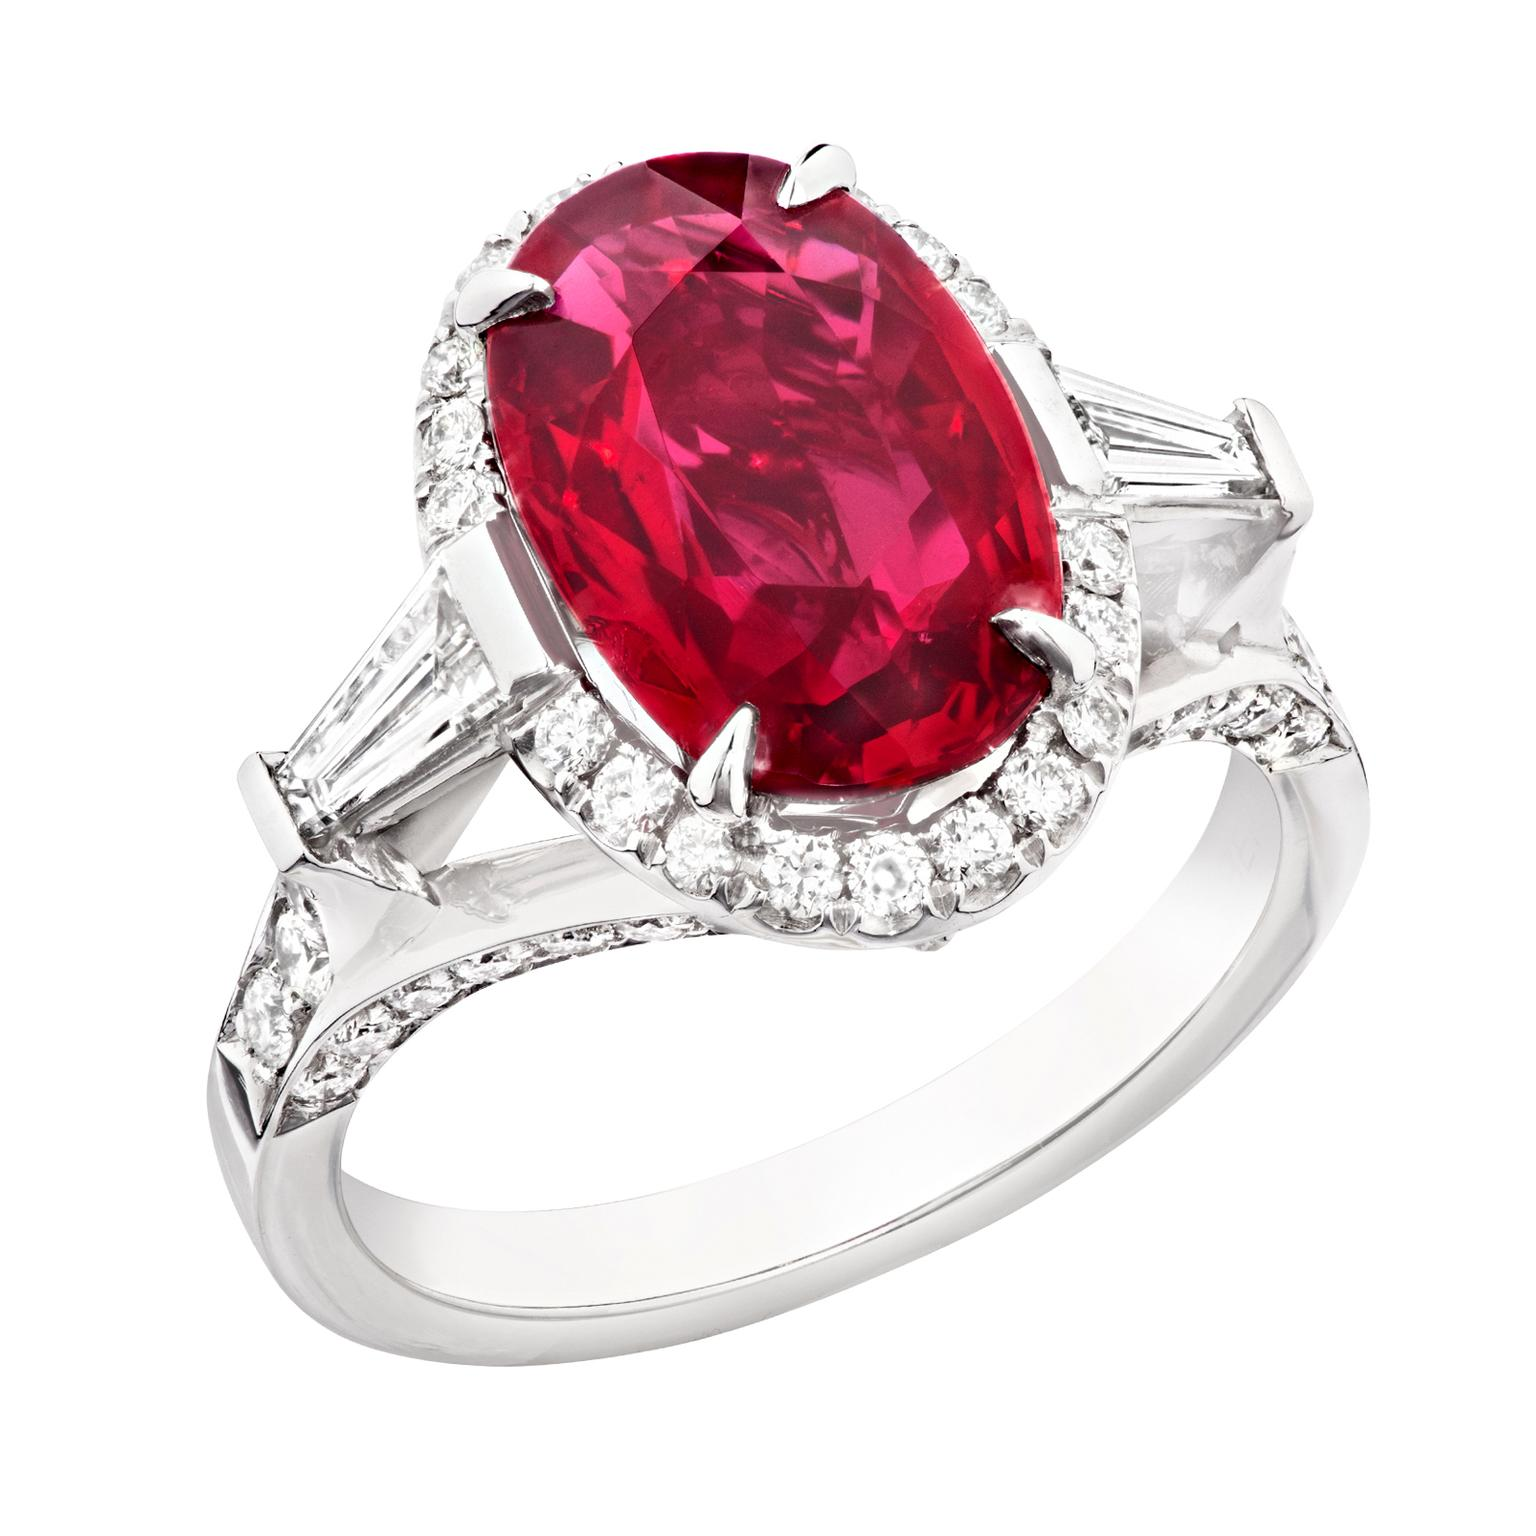 What ring should Prince Harry propose to Meghan with